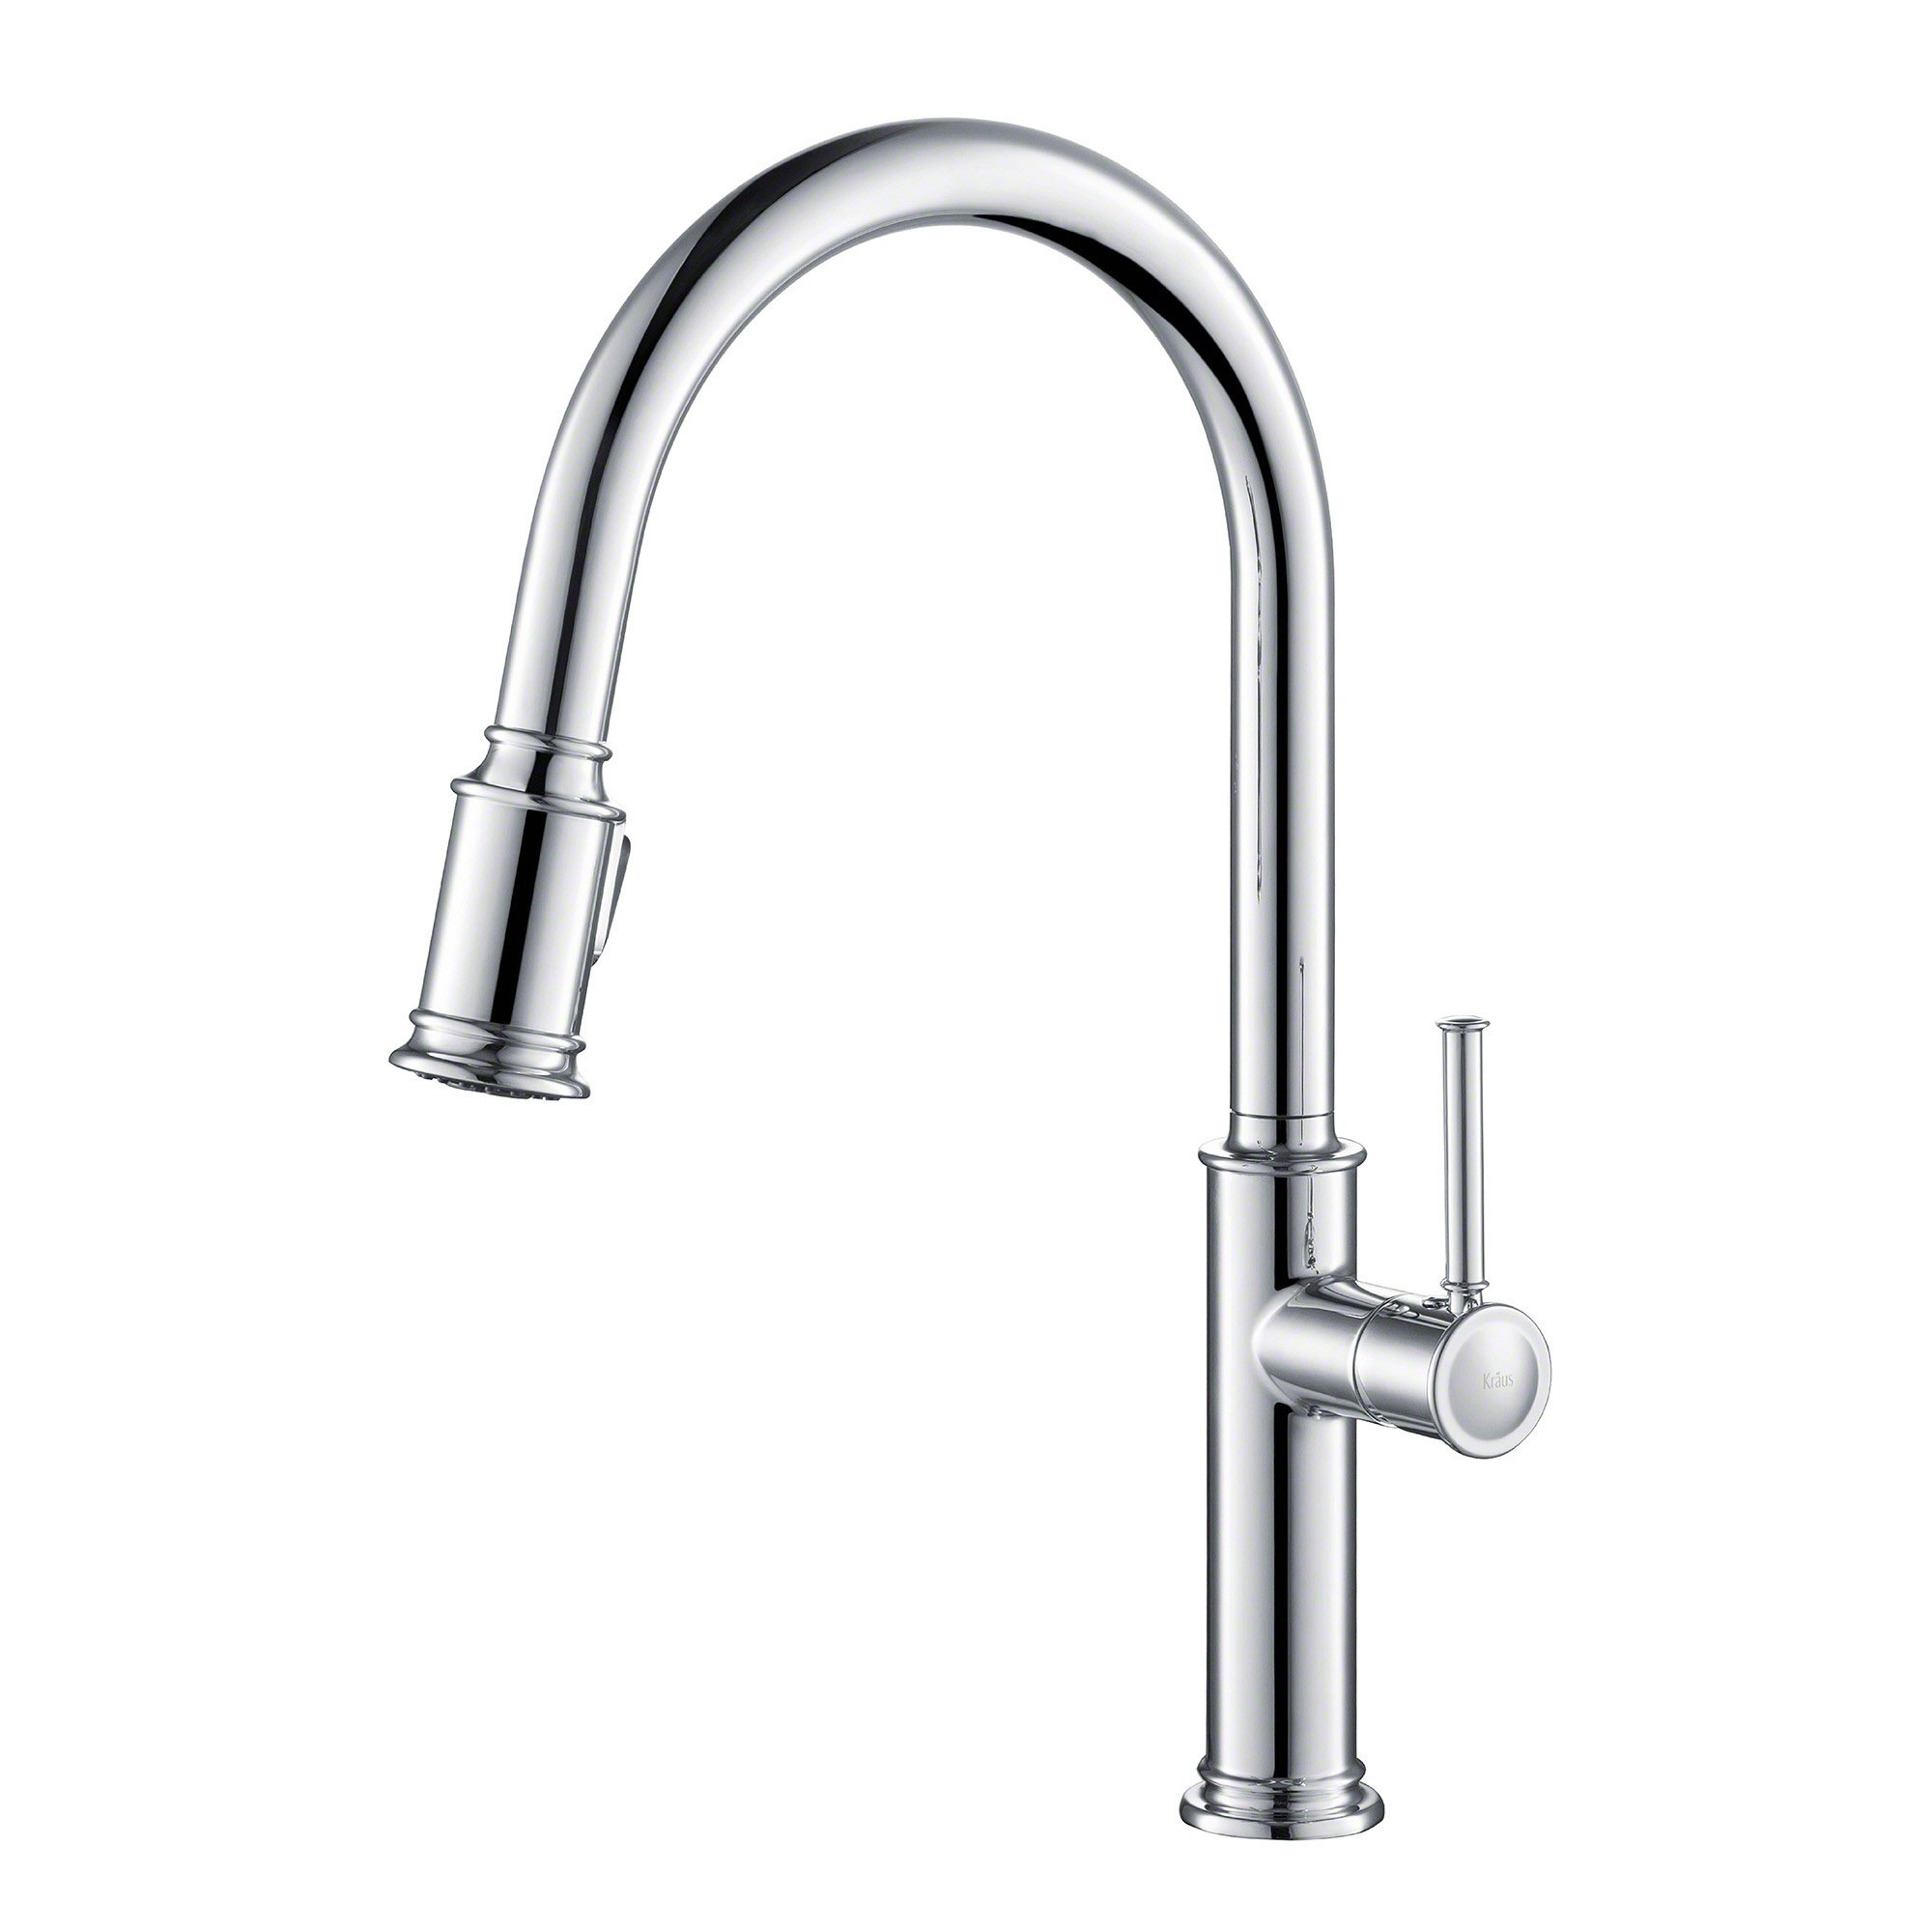 Kraus Sellette Single Pull Down Handle Kitchen Sink Faucet With